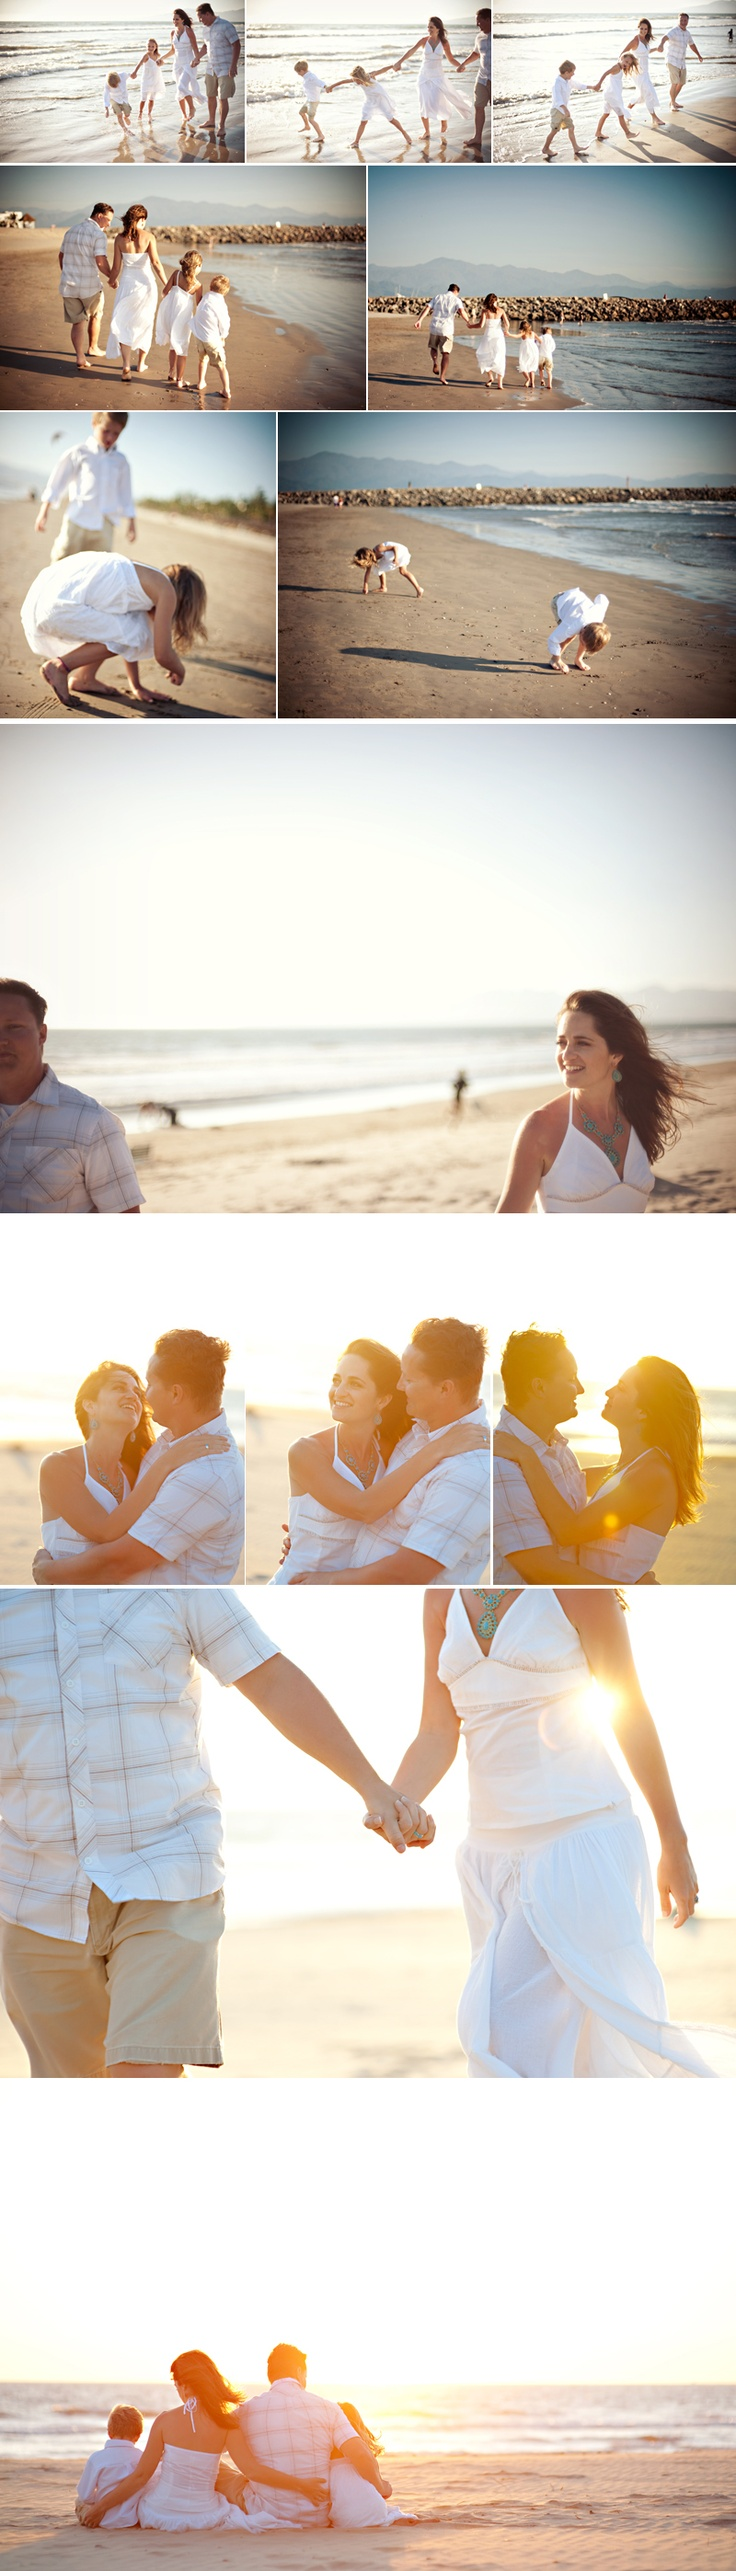 Bottom picture- Awesome family shoot on the beach.